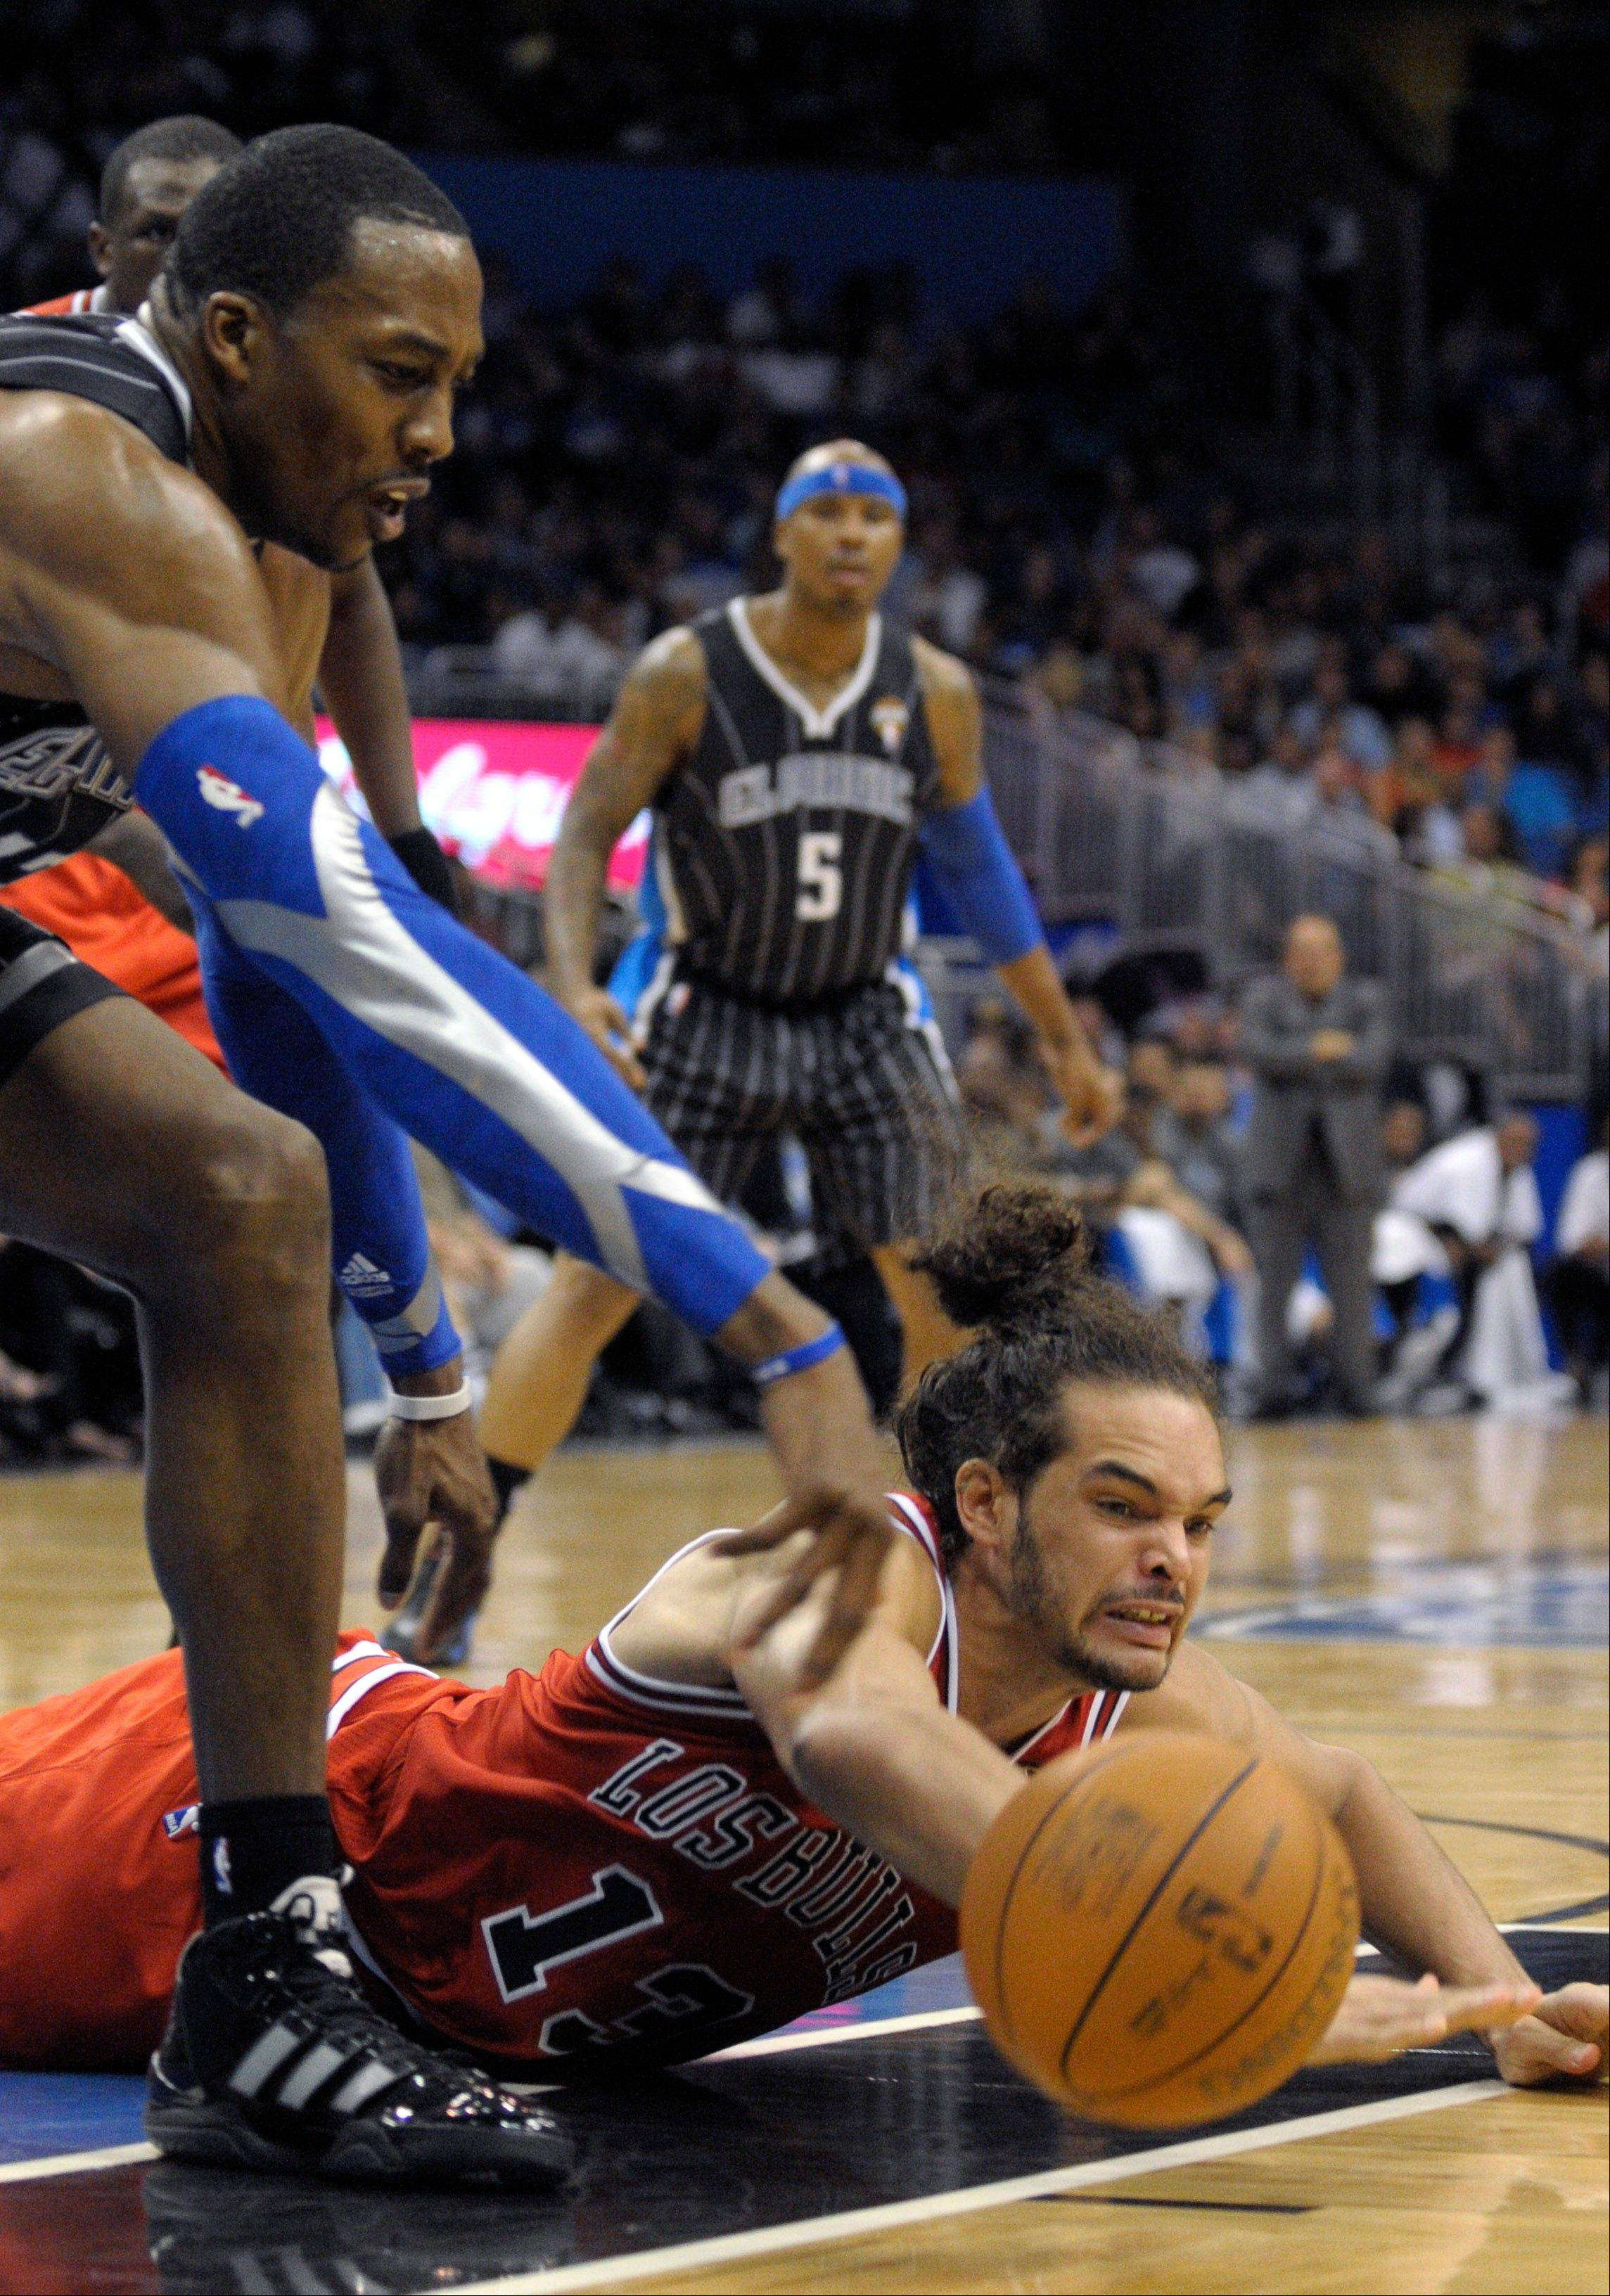 Orlando Magic center Dwight Howard, left, and Chicago Bulls center Joakim Noah battle for the loose ball as Quentin Richardson watches during the second half Monday in Orlando.